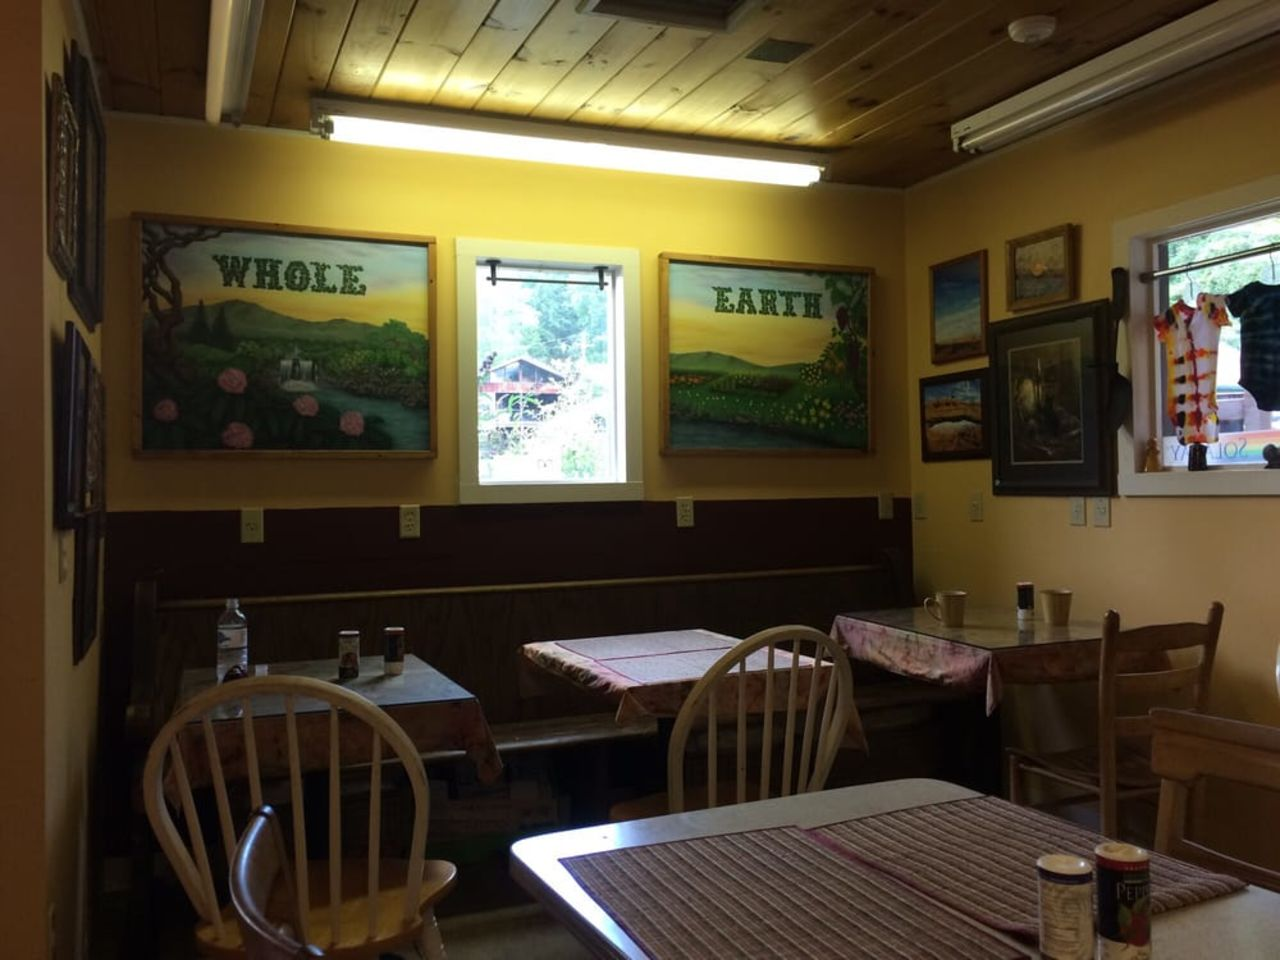 A photo of Whole Earth Grocery & Cafe